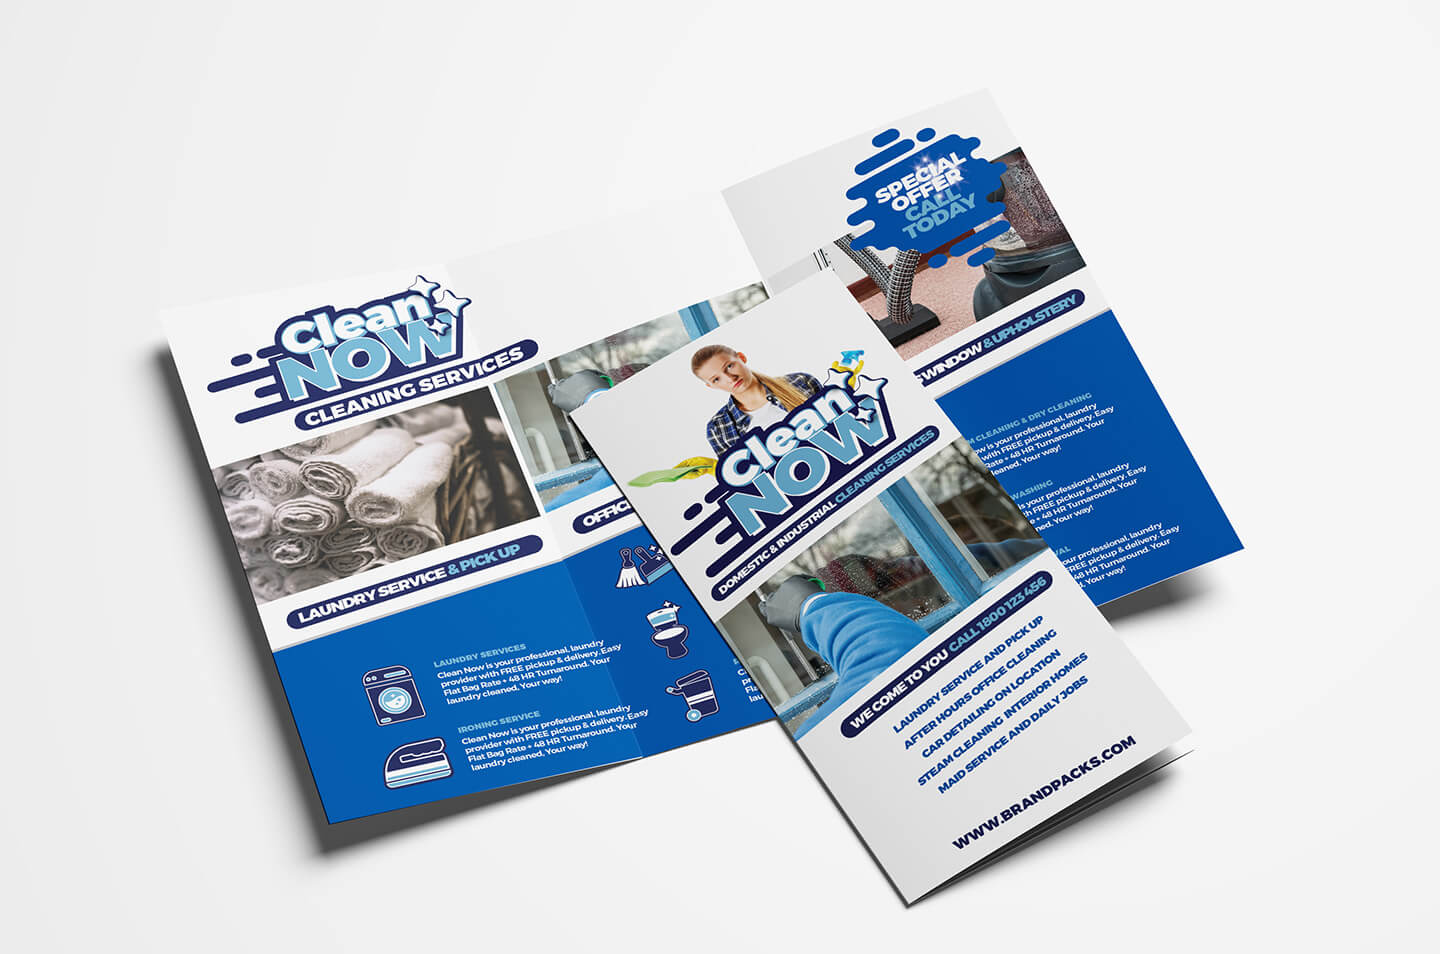 Cleaning Service Trifold Brochure Template In Psd, Ai With Regard To Cleaning Brochure Templates Free